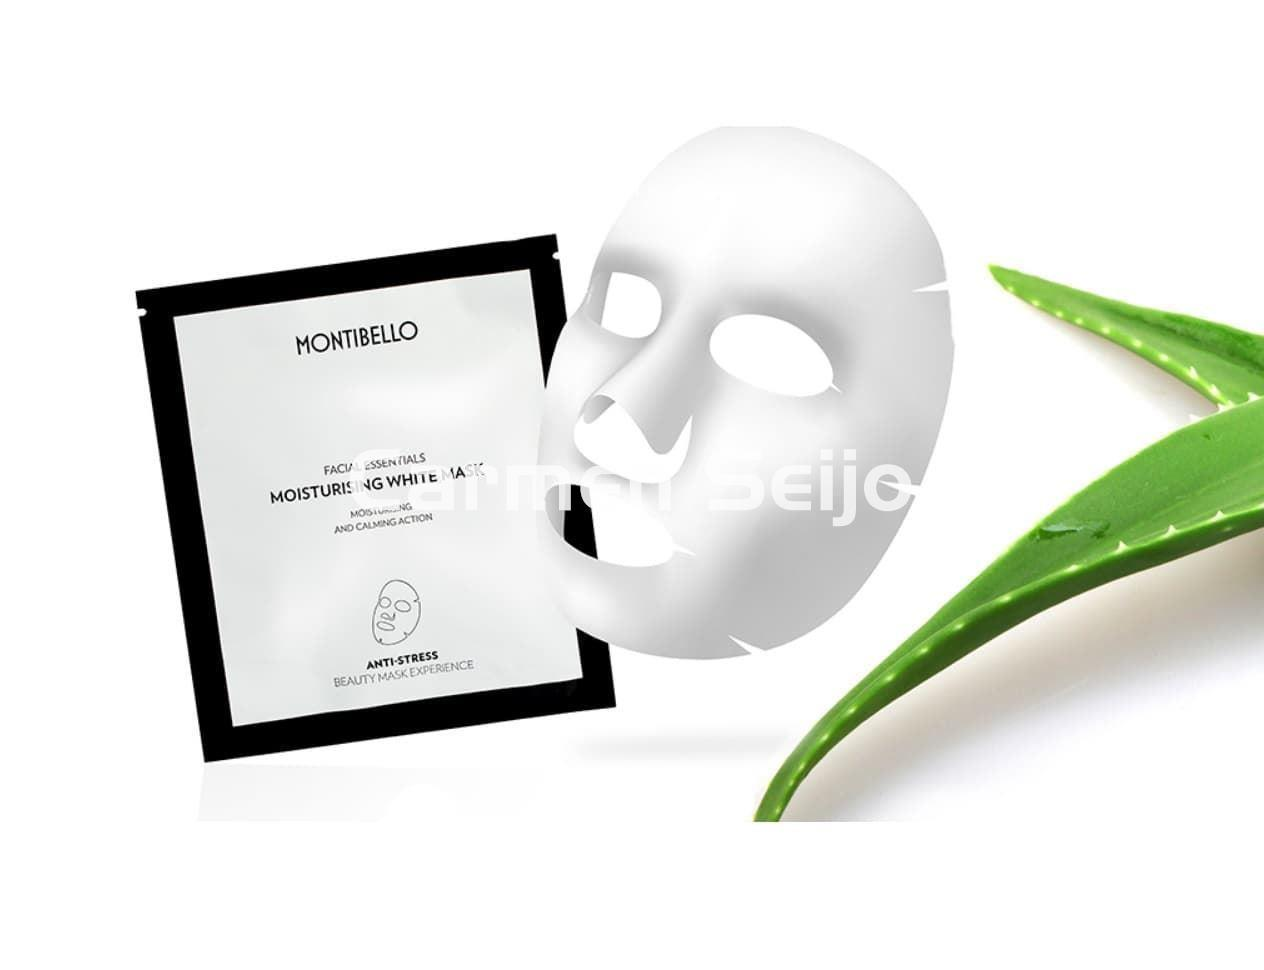 Montibello Mascarilla Moisturising White Mask Facial Essentials - Imagen 1